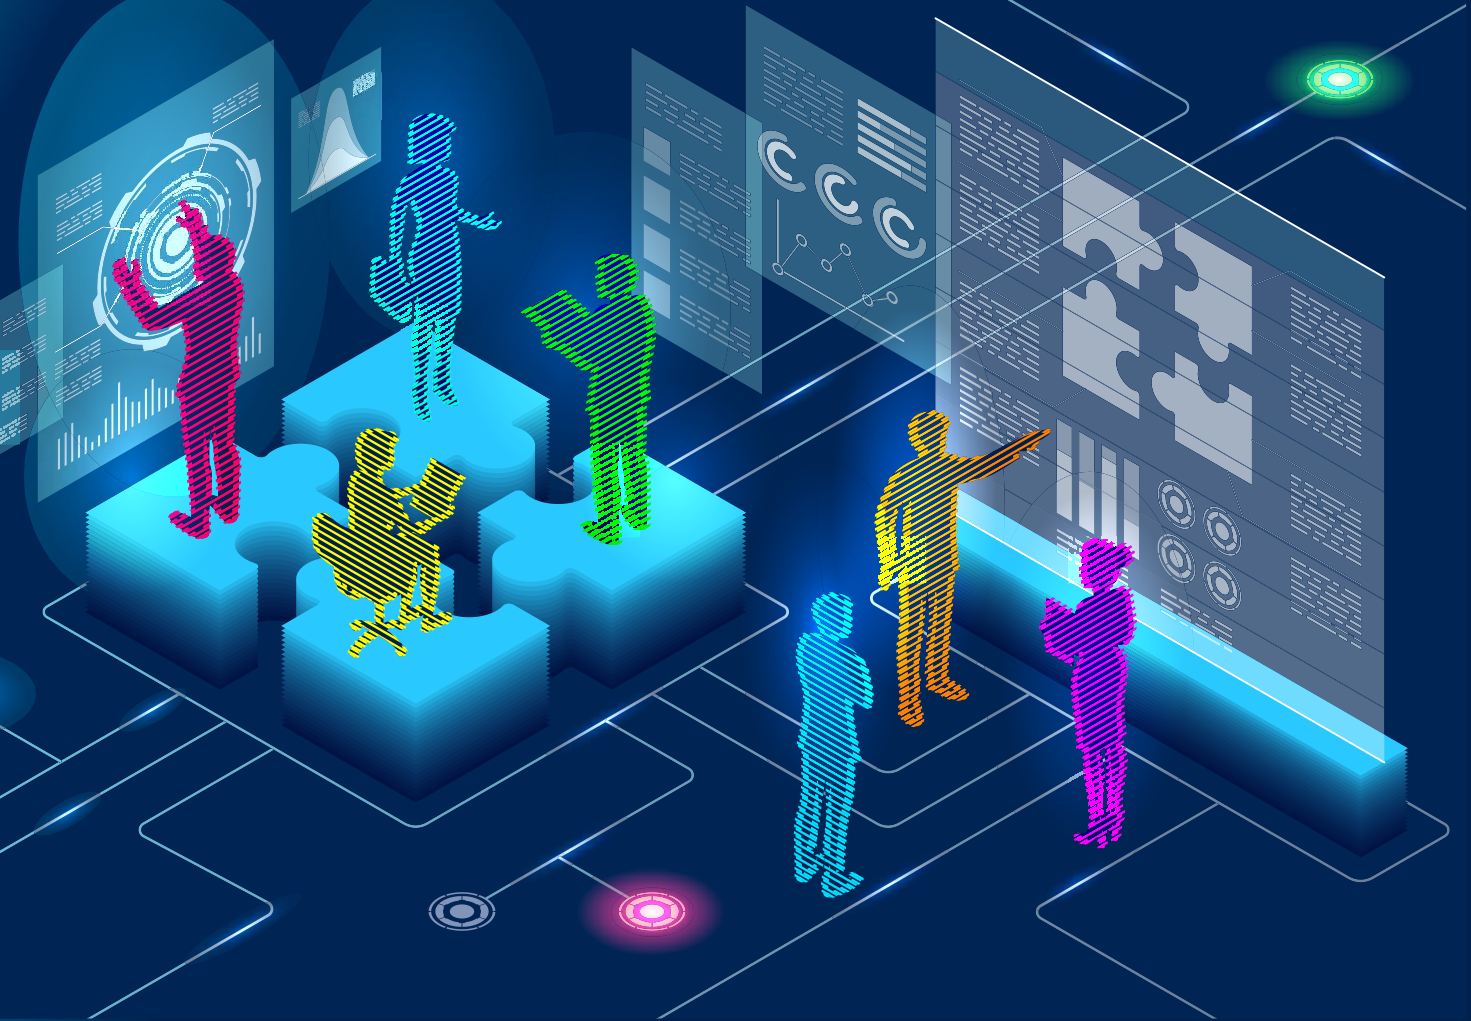 illustration of people augmenting screens